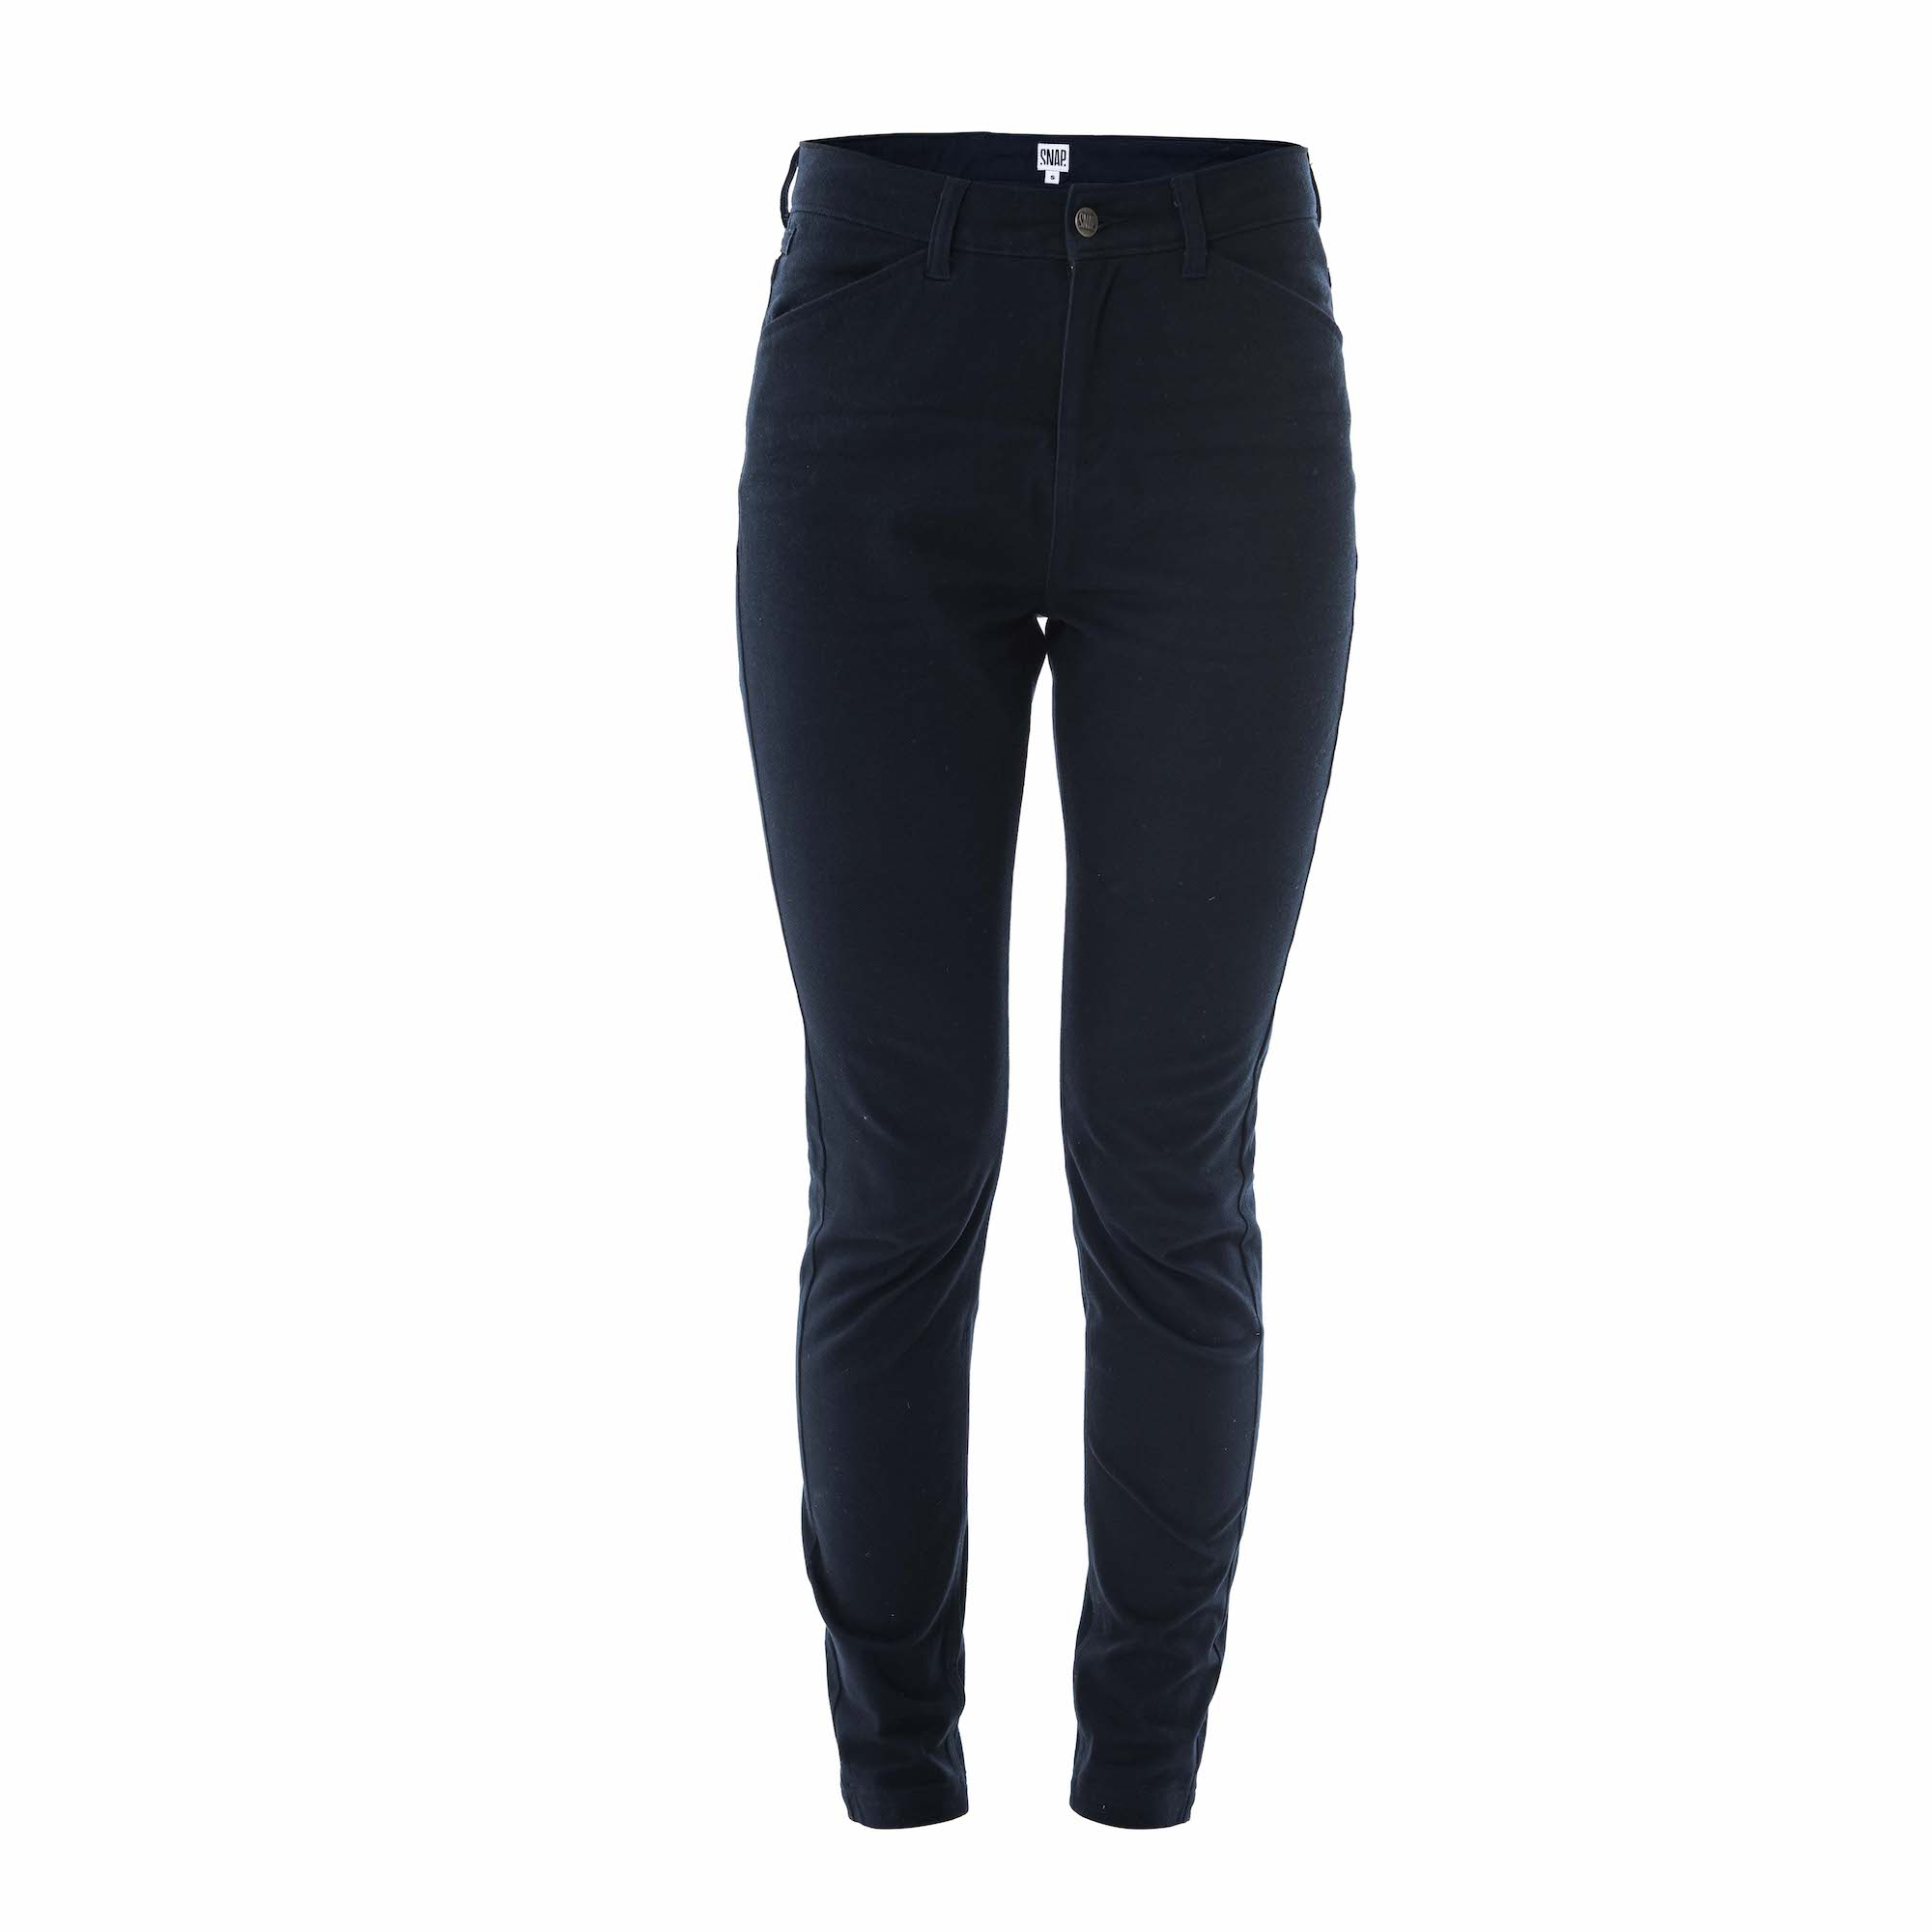 pants for woman high rise